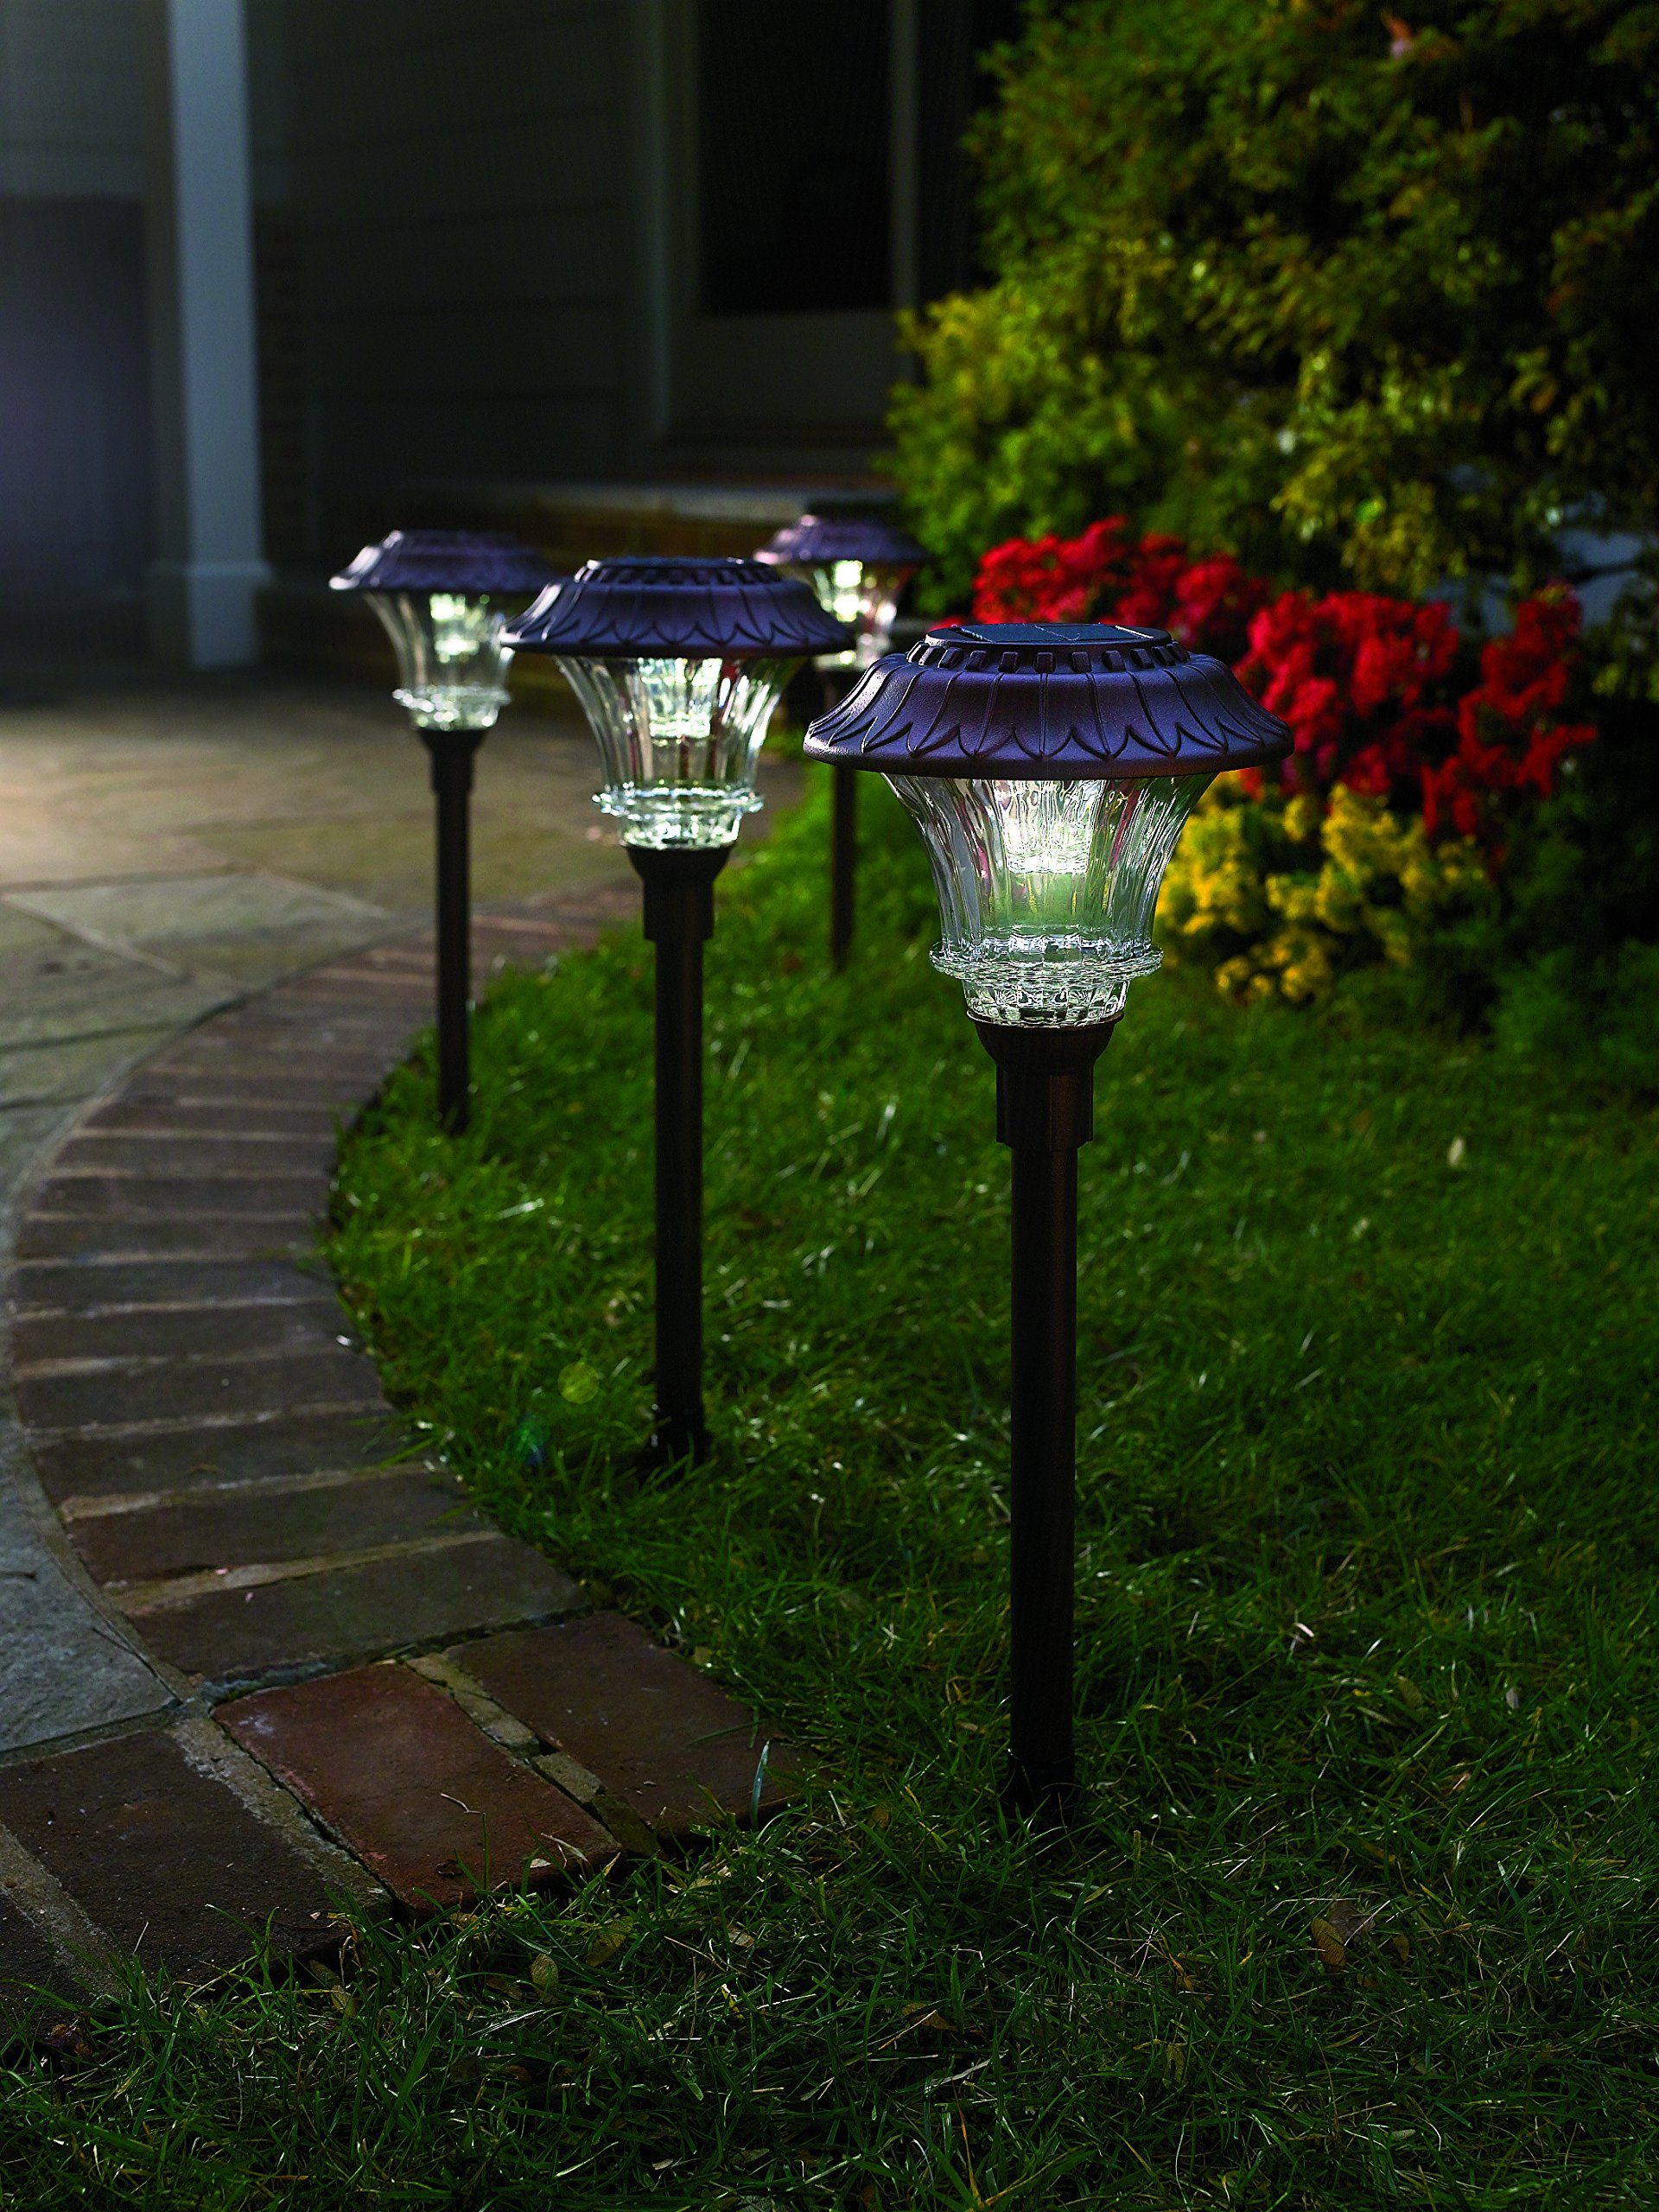 Set of 4 Solar Garden Path Lights, Glass and Powder Coated Cast Aluminum Metal, 6 Bright LEDs per Light 50 Lumens Output per LED, Easy No Wire Installation, Outdoor All Weather, Bronze by Plow&Hearth